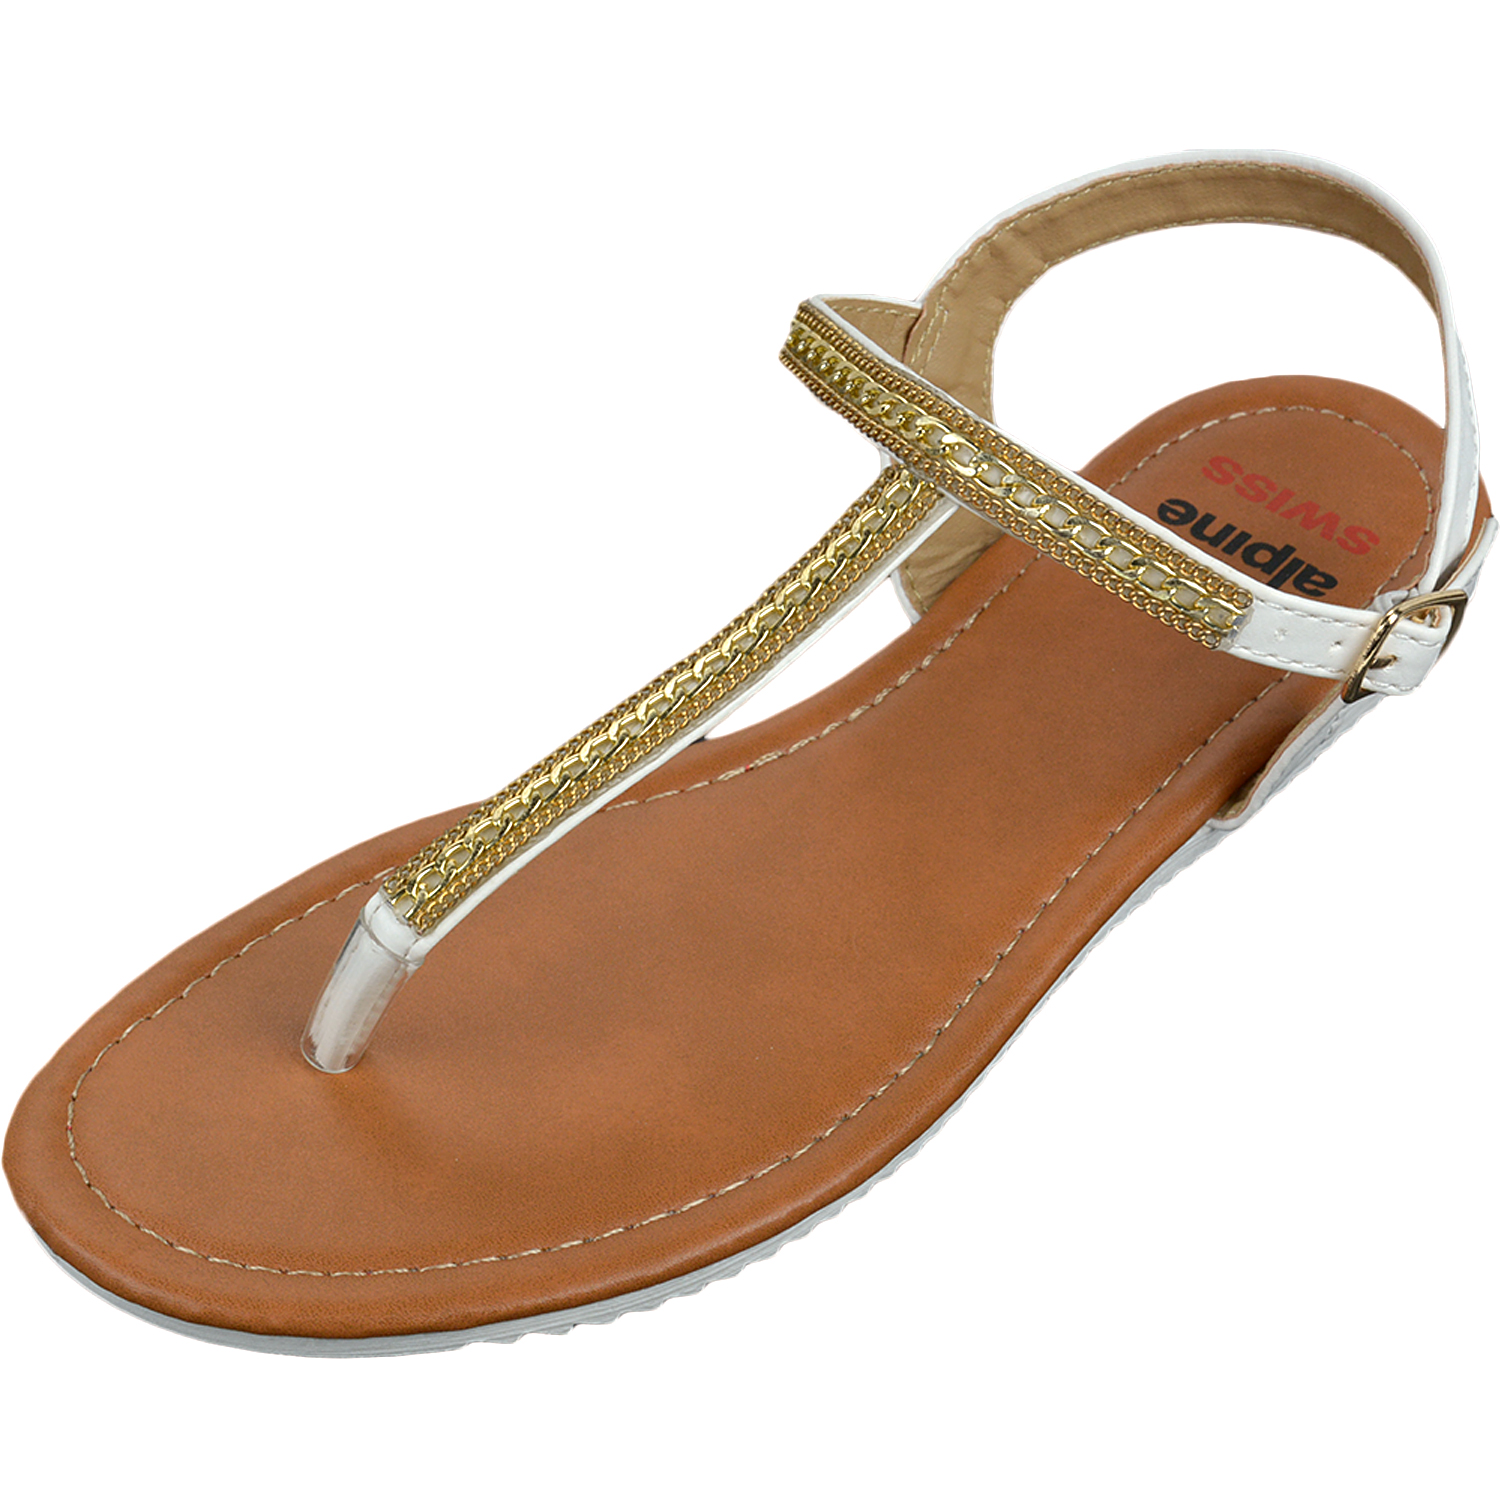 Alpine Swiss Womens Dressy Sandals Slingback Thongs Gold T